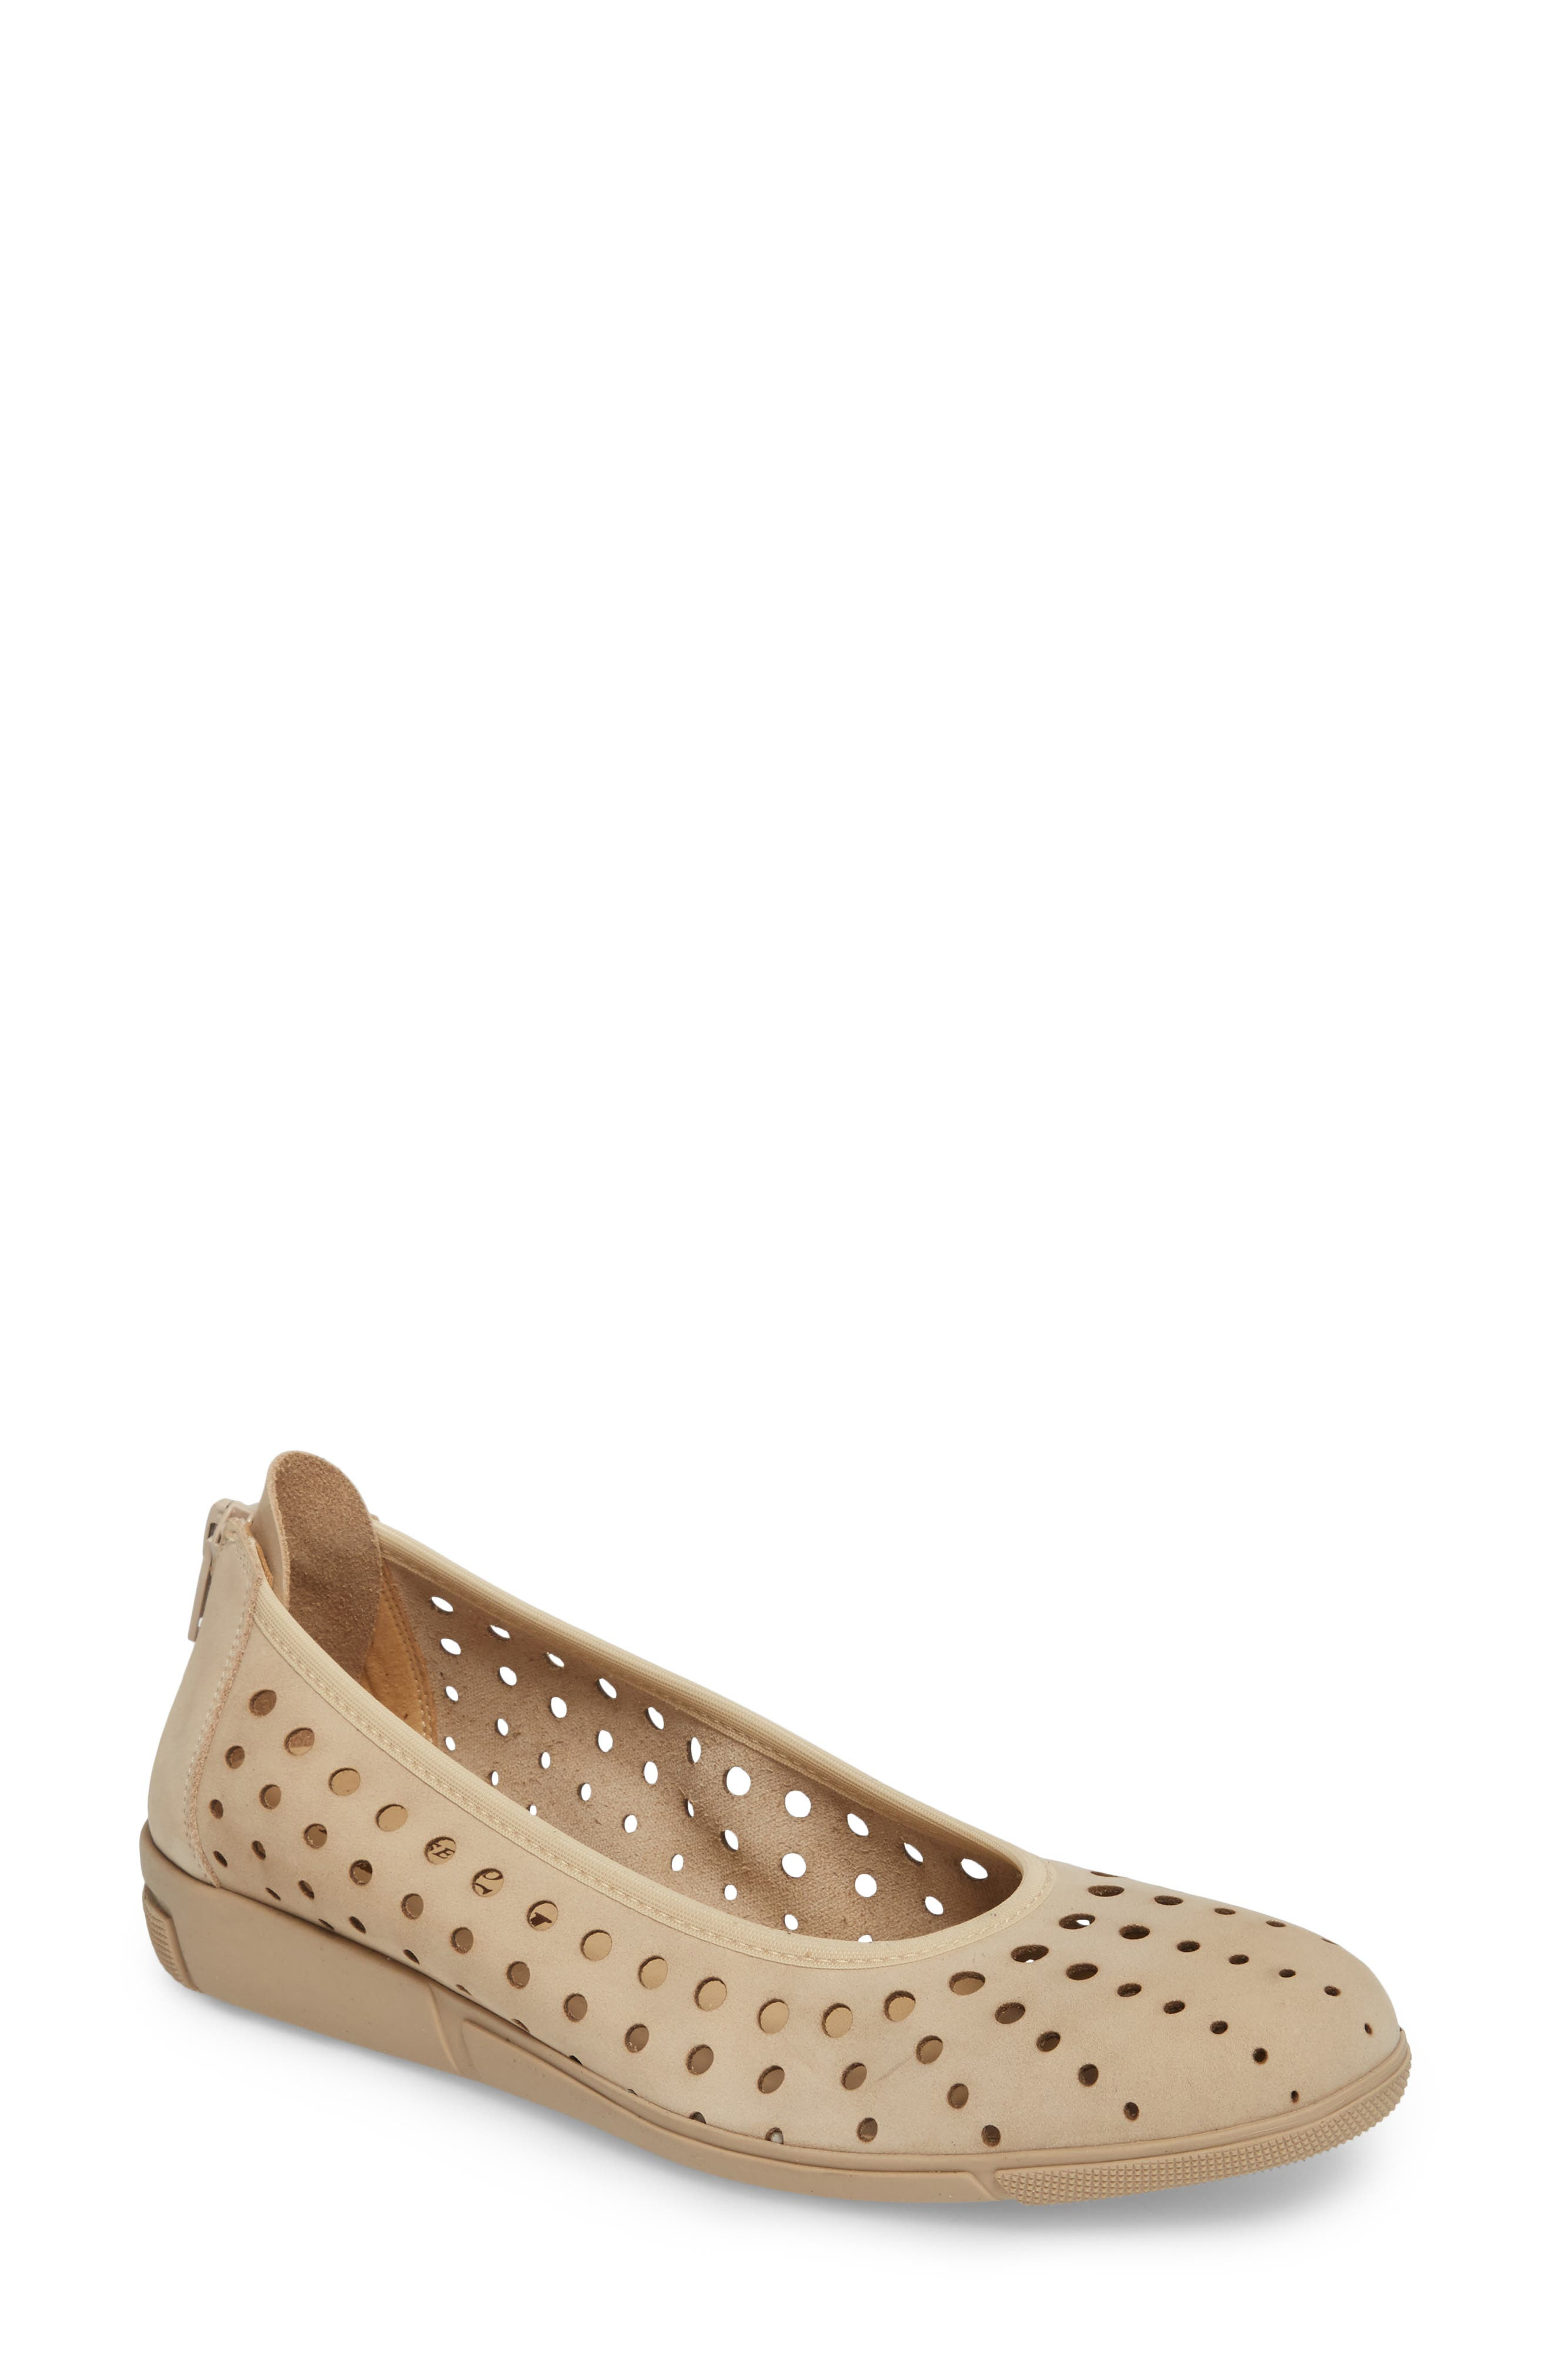 Diva Perforated Skimmer,                             Main thumbnail 1, color,                             Beige Nubuck